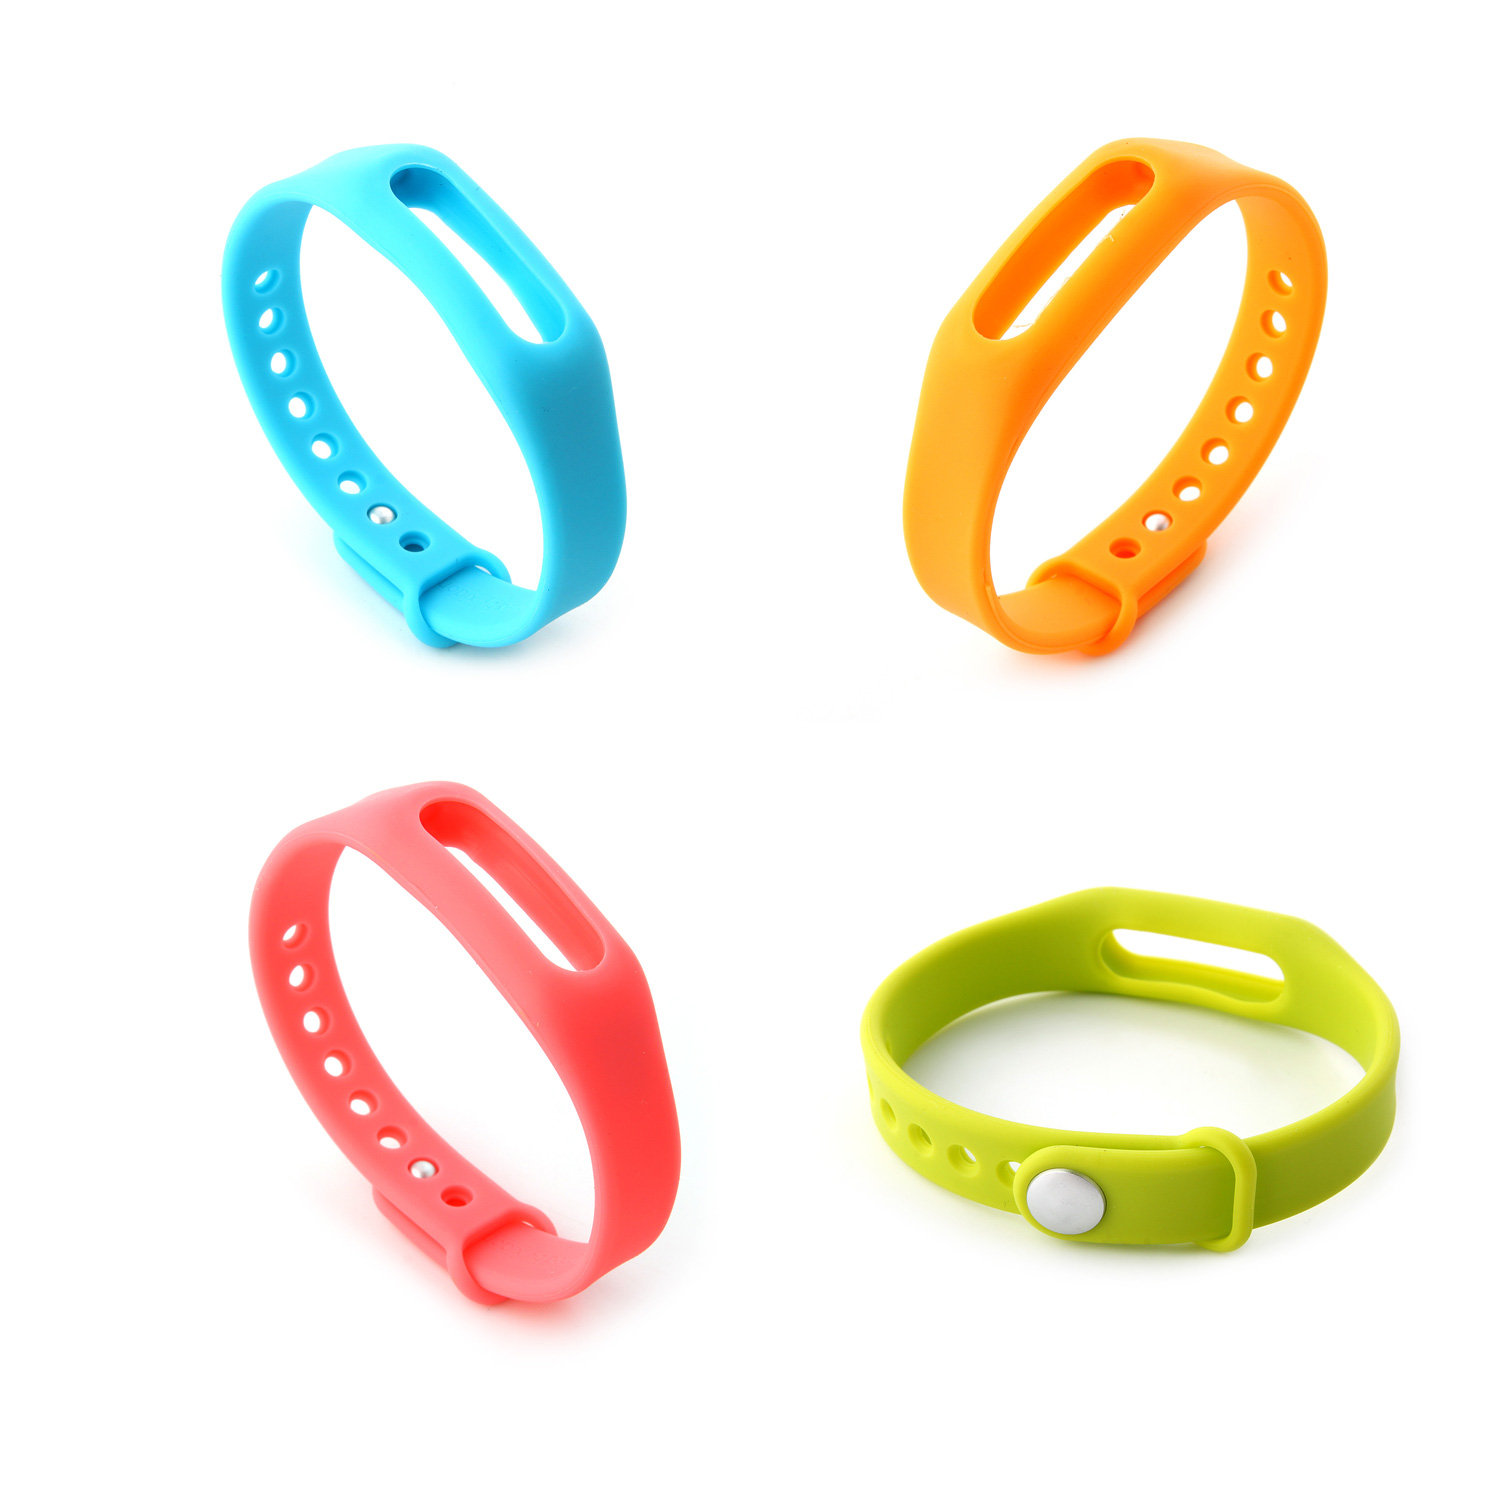 4PCS Replacement Wrist Strap Wearable Wrist Band for XIAOMI MI Band Bluetooth Bracelet